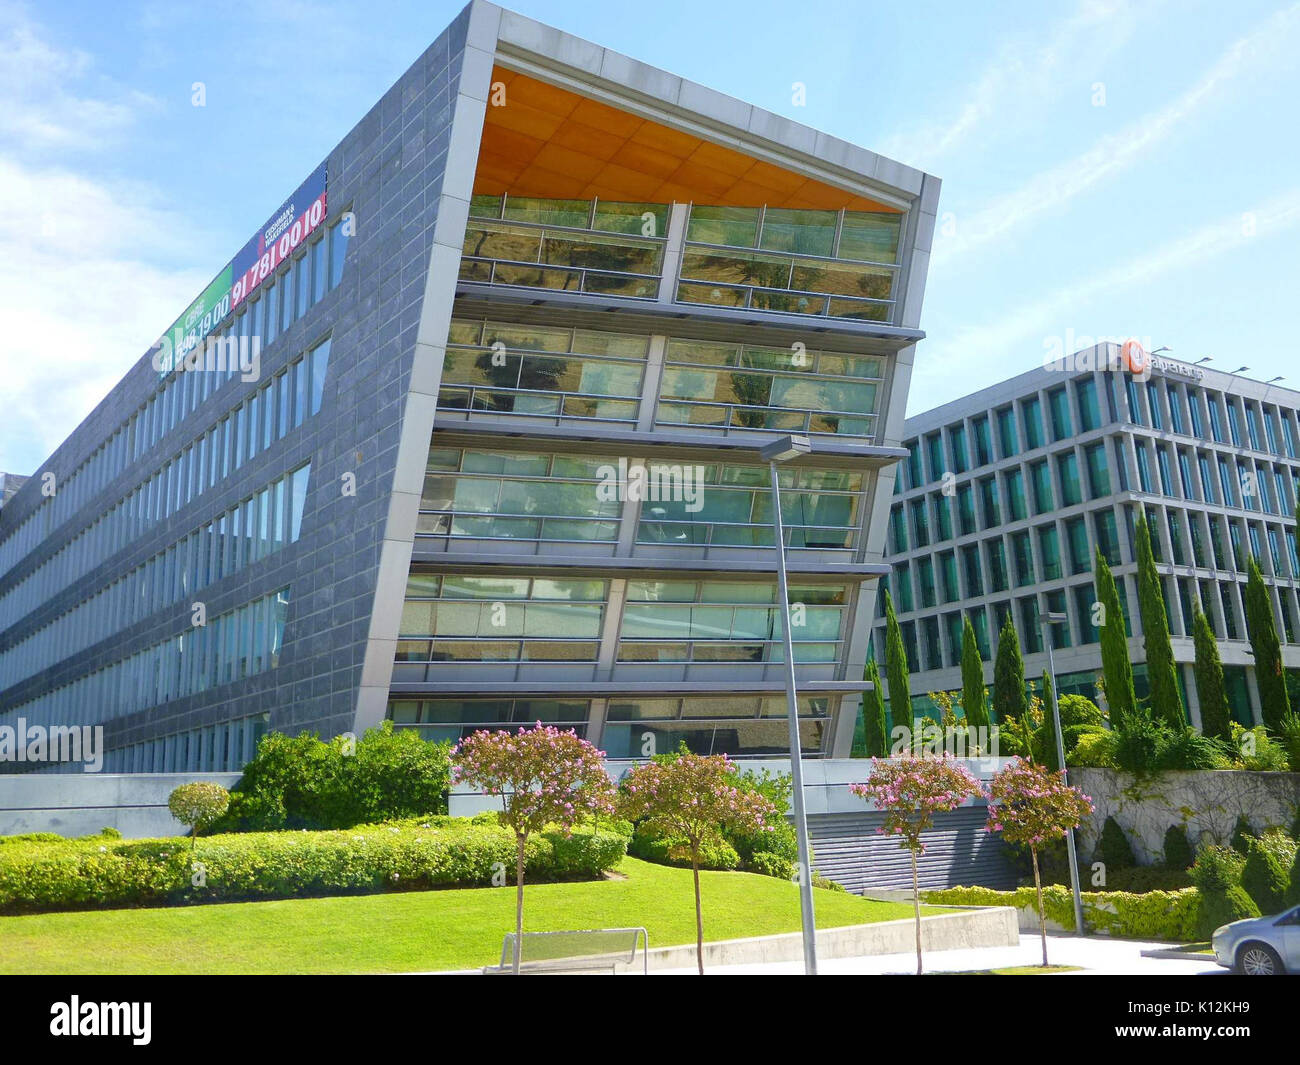 Moraleja stock photos moraleja stock images alamy for Nationale nederlanden oficinas